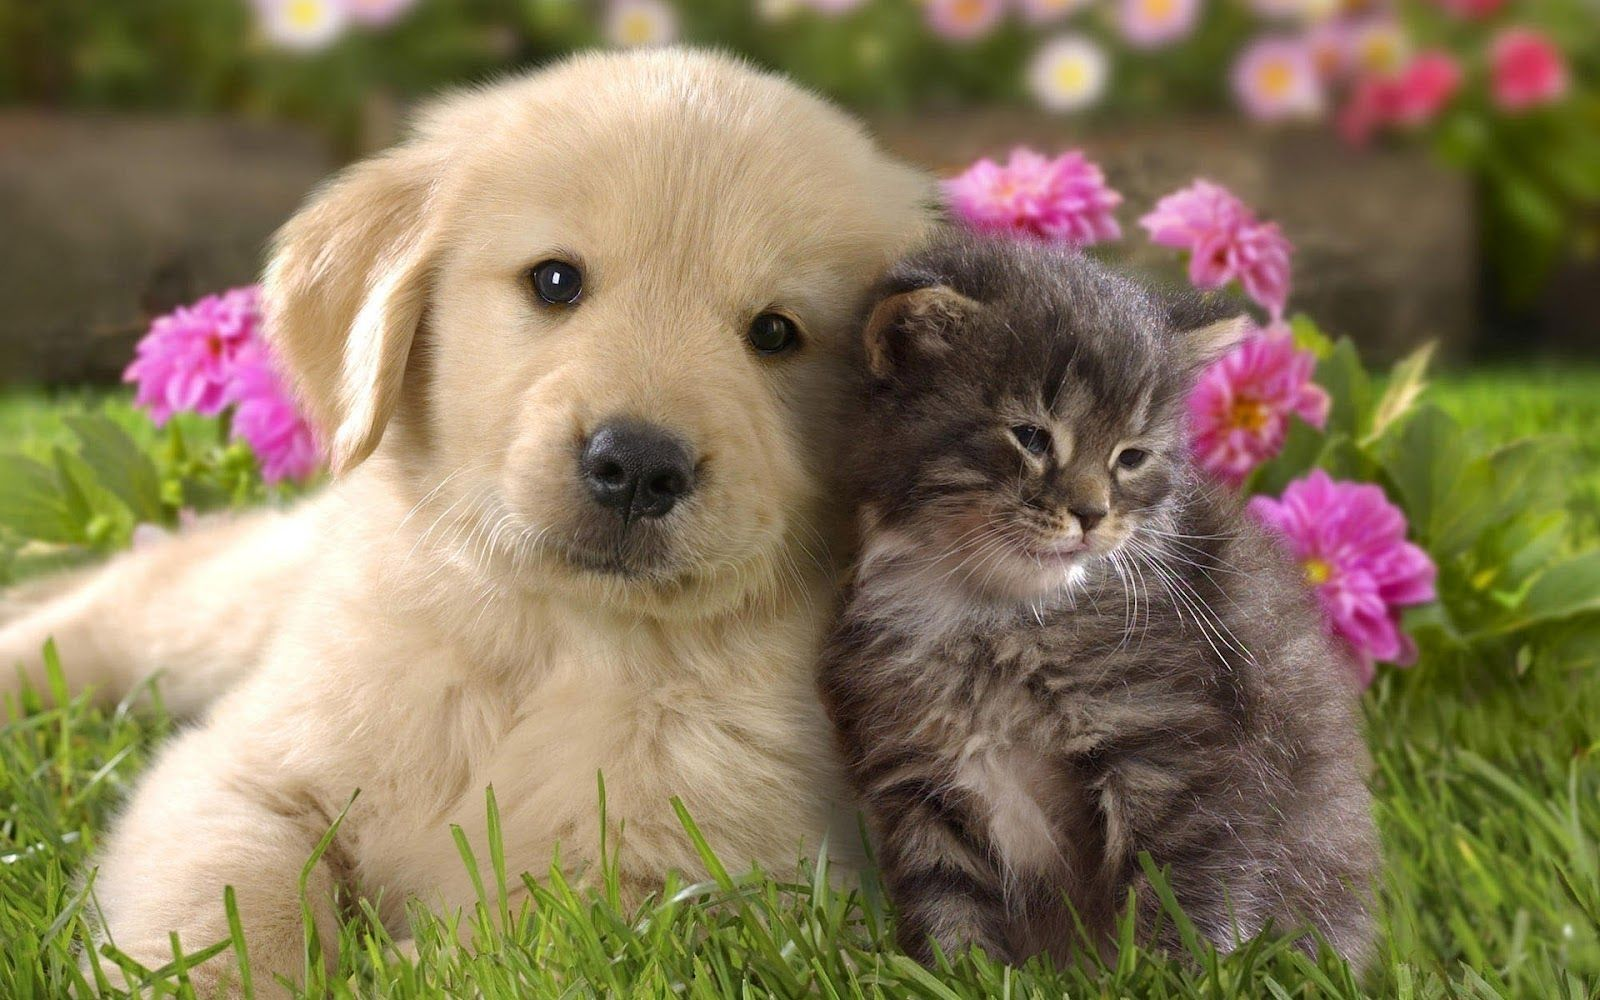 10 Latest Cute Dog And Cat Wallpaper Full Hd 1920 1080 For Pc Background Cute Puppies And Kittens Cute Cats And Dogs Kitten Wallpaper